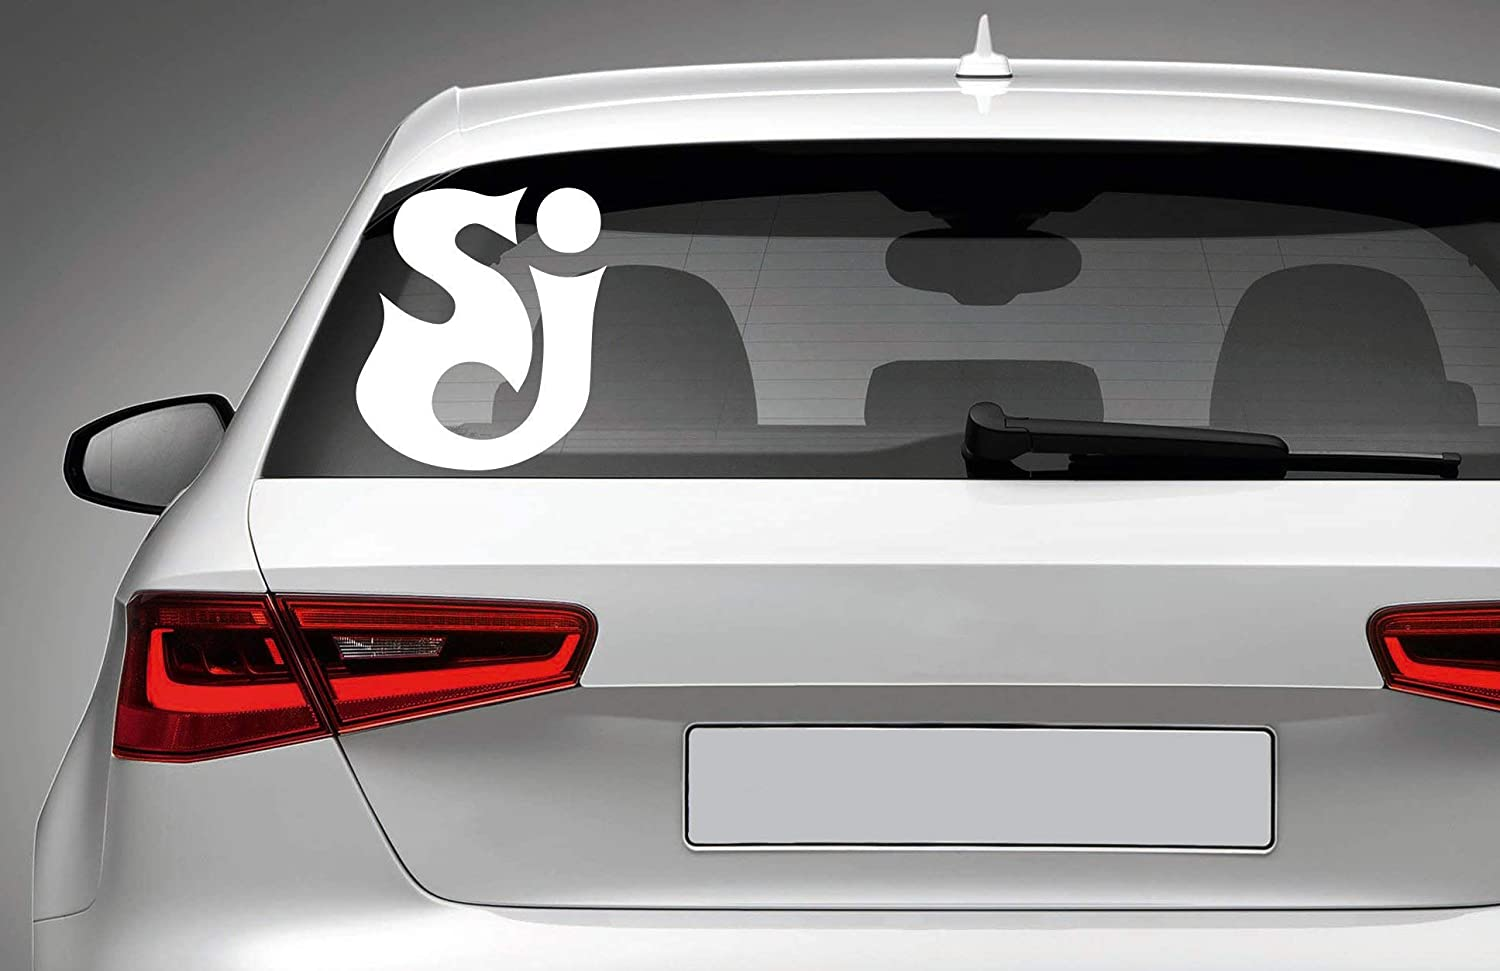 Seven Lions And Slander Decal Decal For Car Phone Edm Sticker Edm Dj Vinyl Car Decal Car Stickers Holographic Decals Custom Decal Custom Decals Car Decals Car Stickers